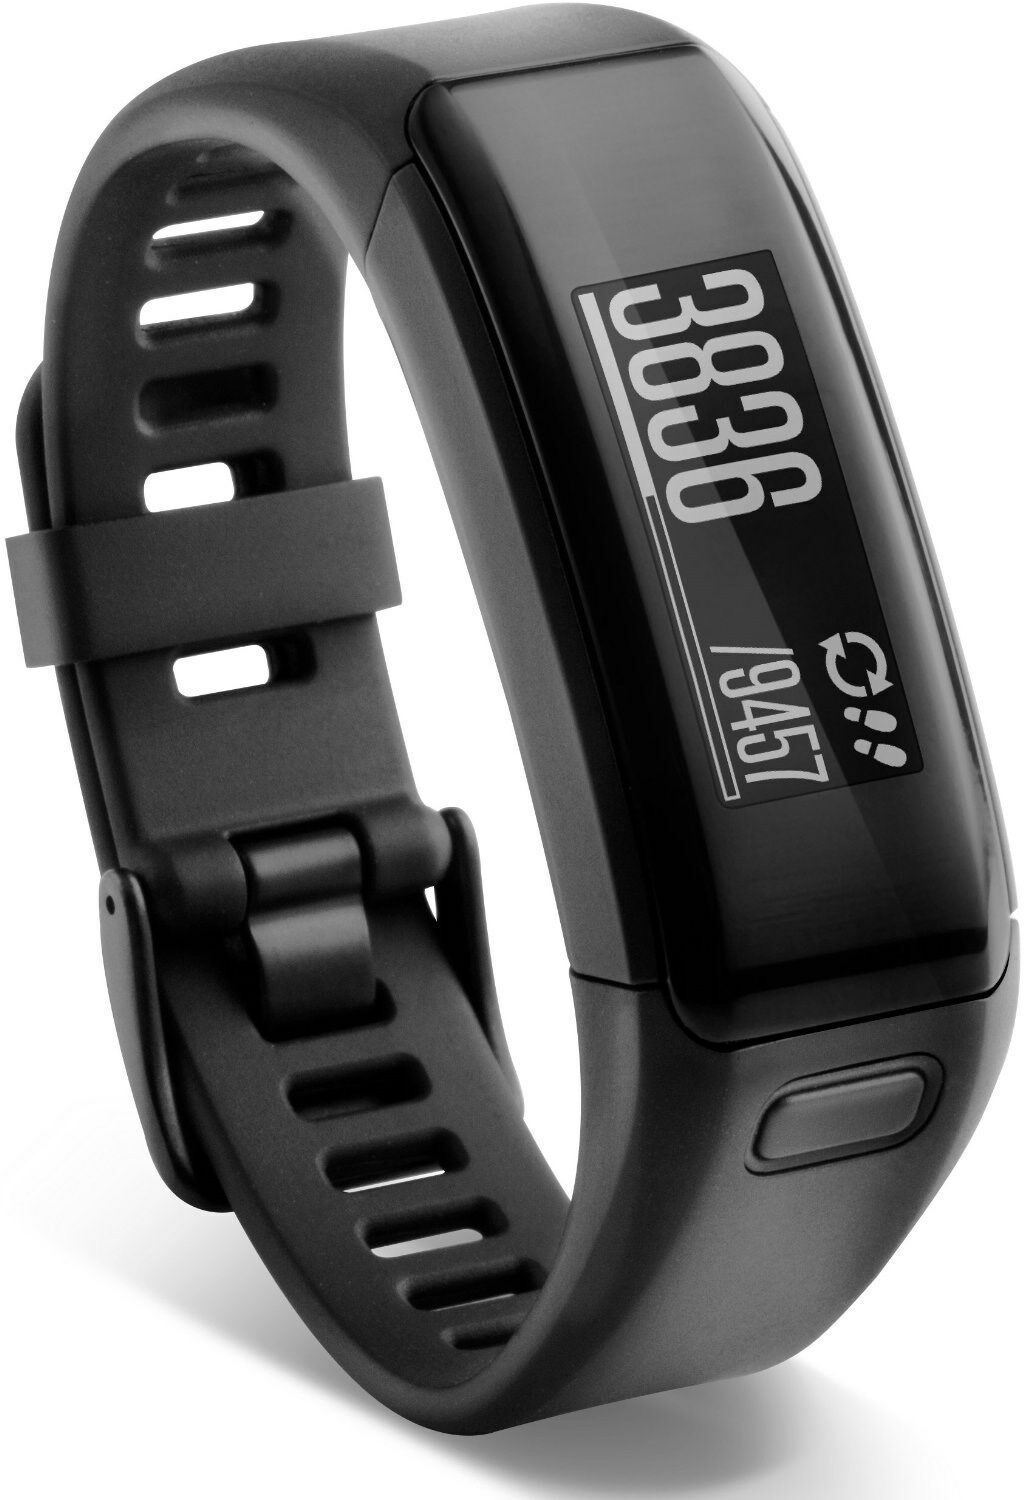 Garmin-Vivosmart-HR-Touchscreen-Activity-Tracker-w-Built-In-HRM-Black